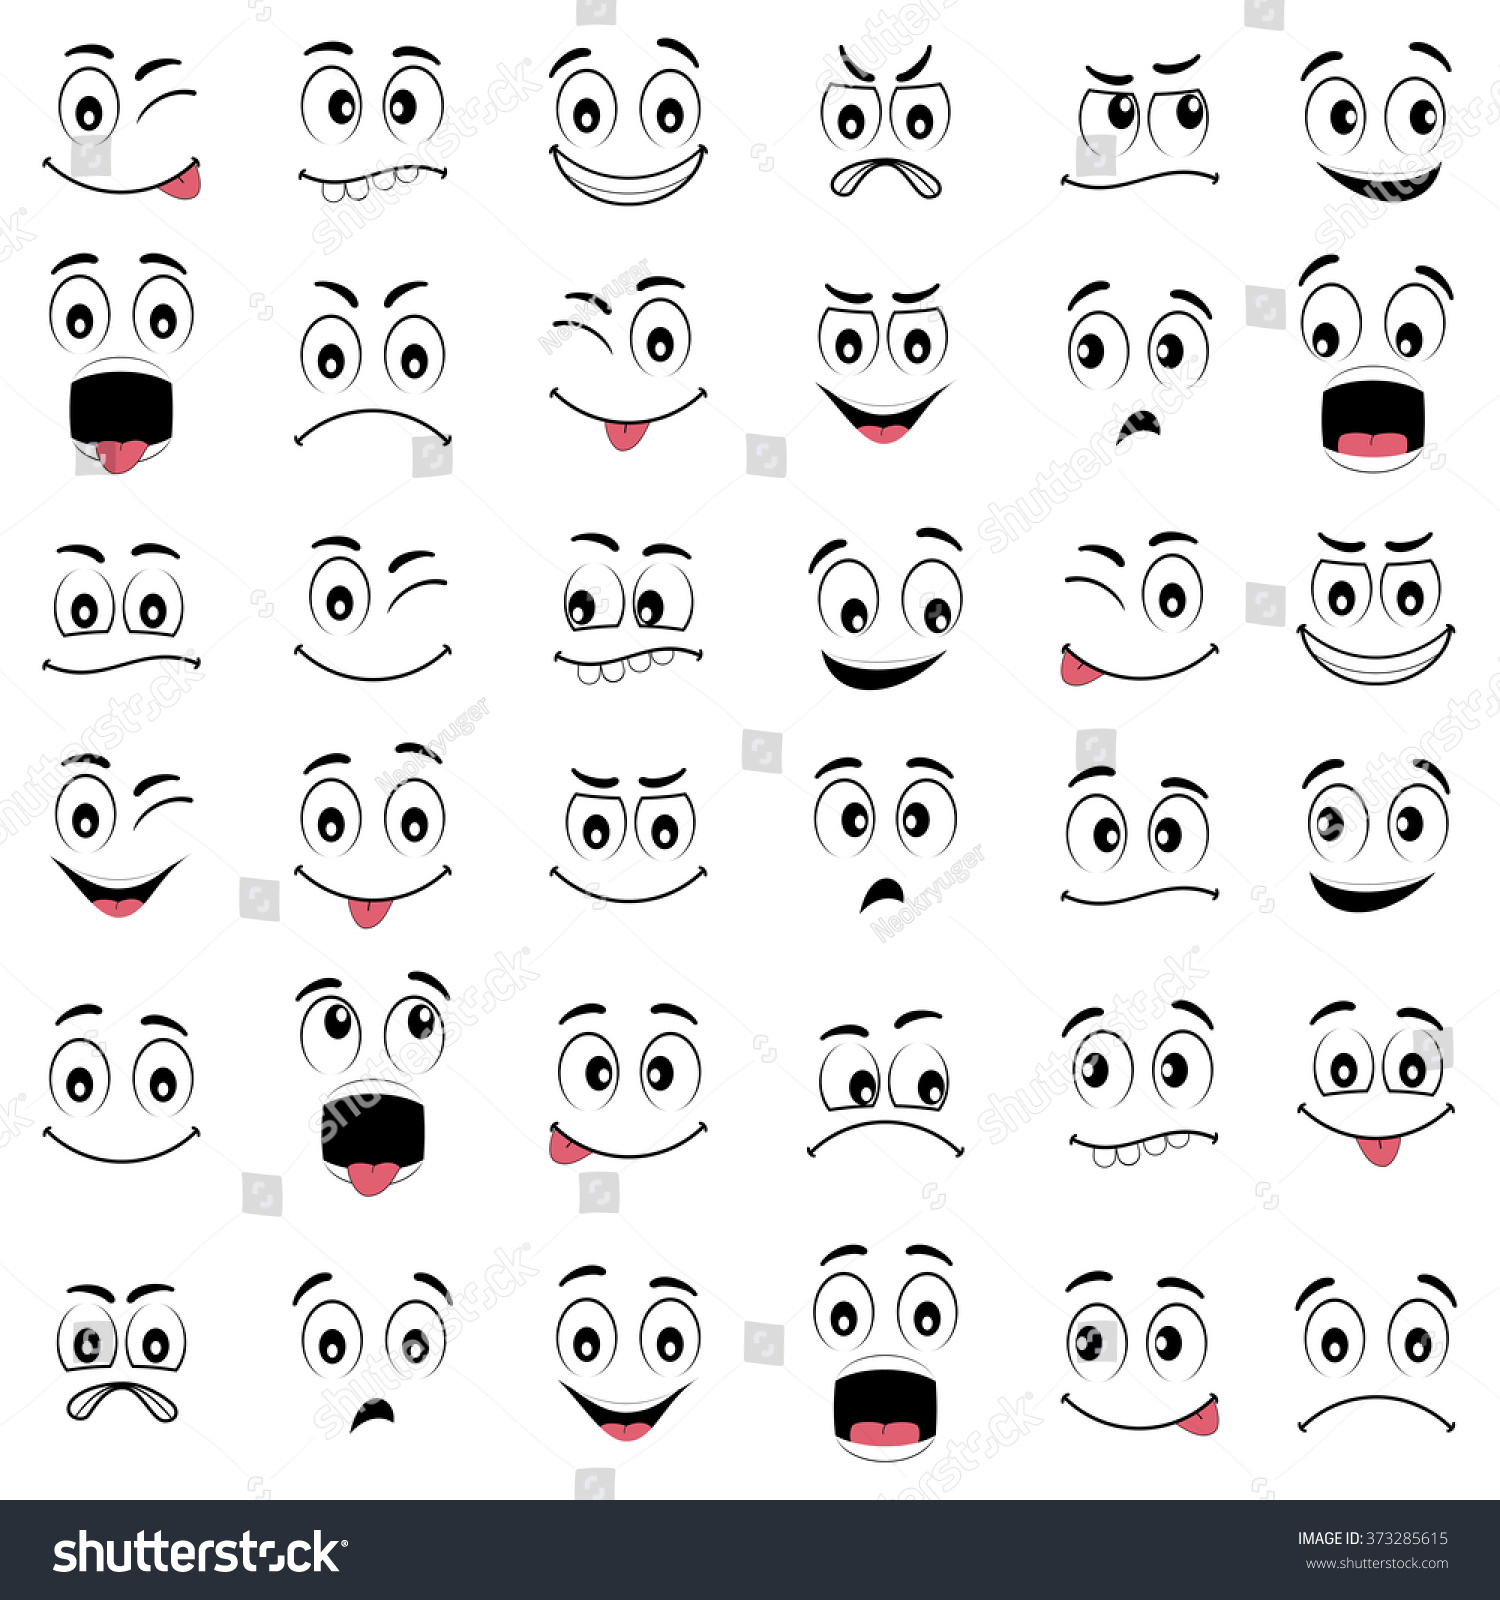 Cartoon Faces Different Expressions Featuring Eyes Stock